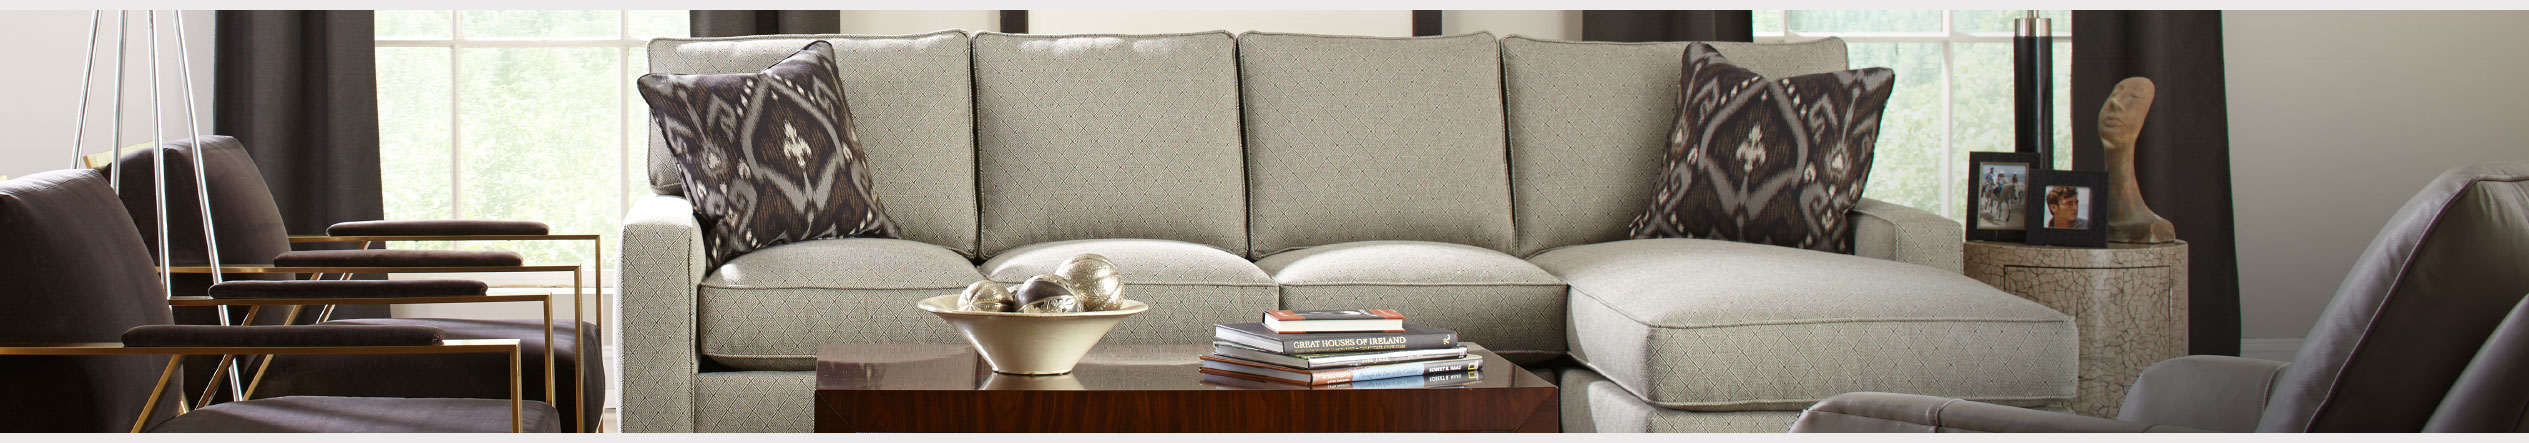 Pickup and Delivery policies at Jordan's Furniture stores in MA, NH and RI